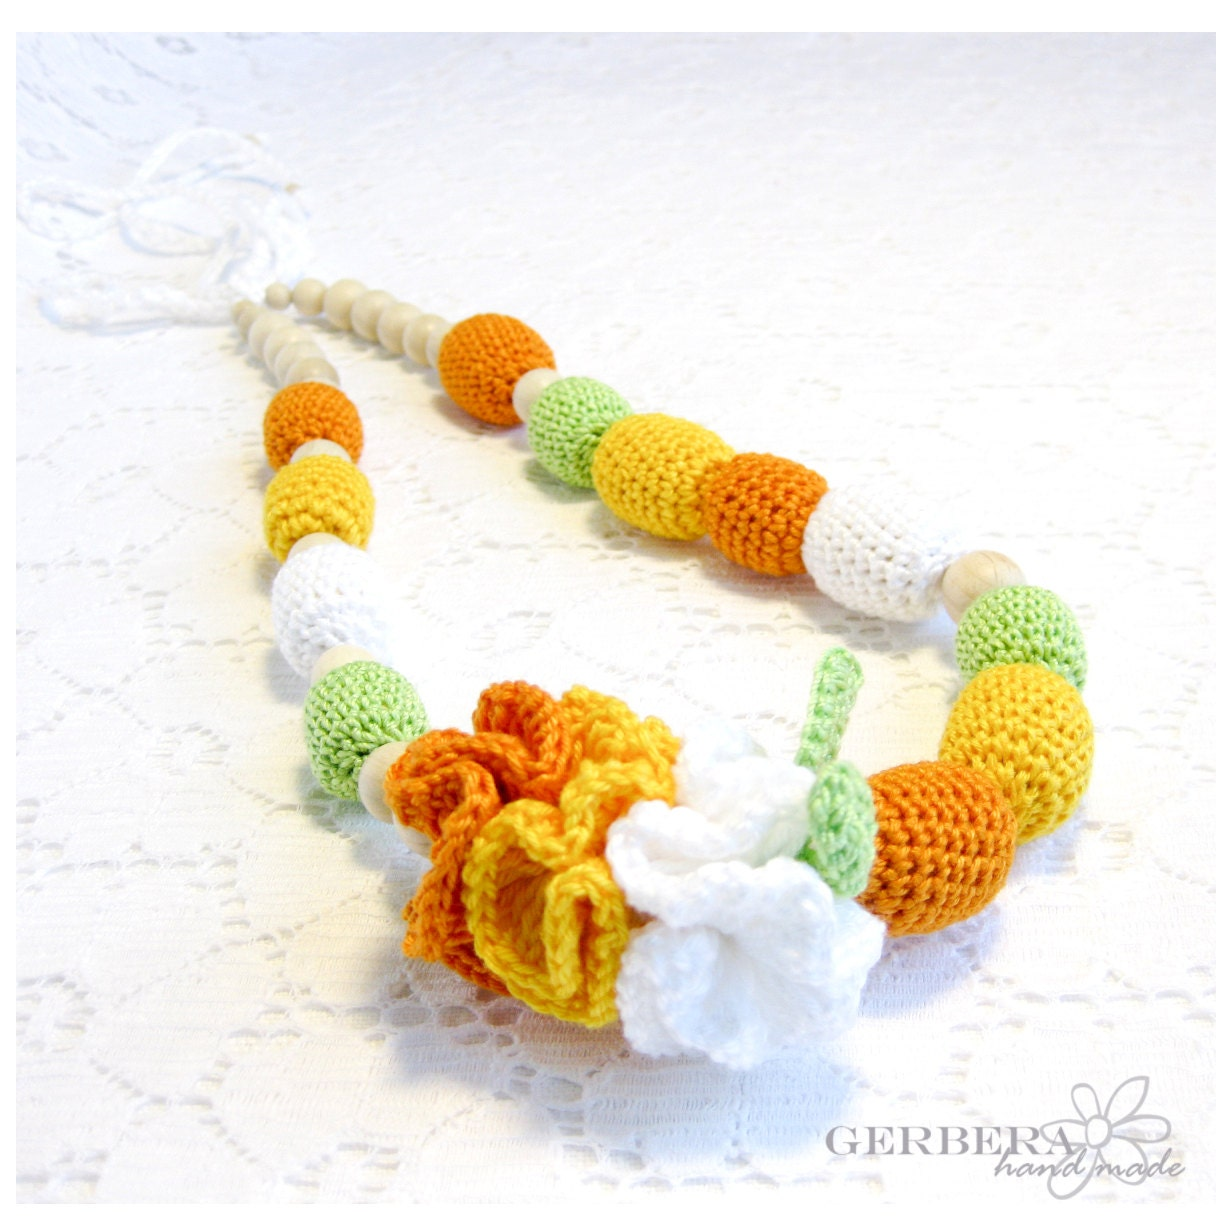 Nursing necklace & autumn breastfeeding toy for Mommy to Wear and baby - yellow orange green READY TO SHIP - GerberaHandmade